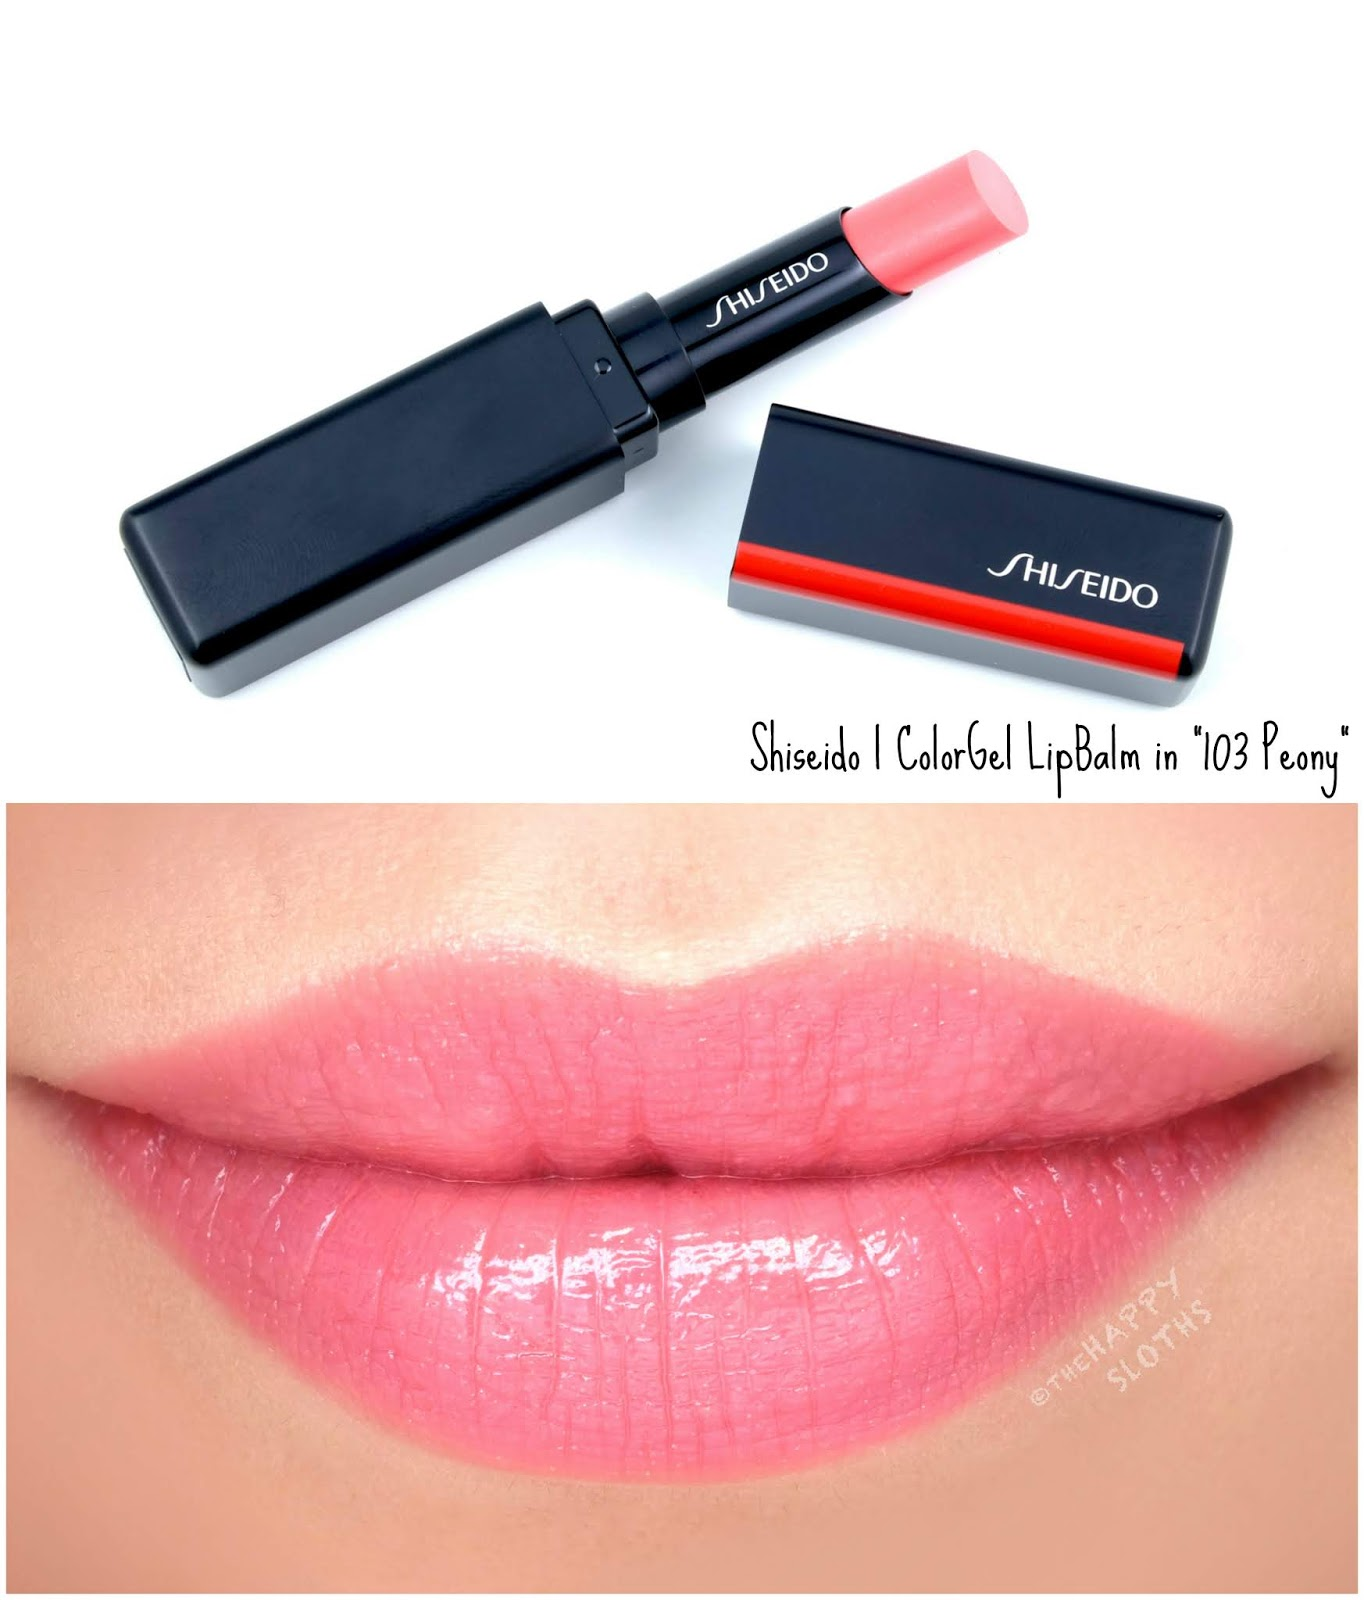 "Shiseido | ColorGel LipBalm in ""103 Peony"": Review and Swatches"